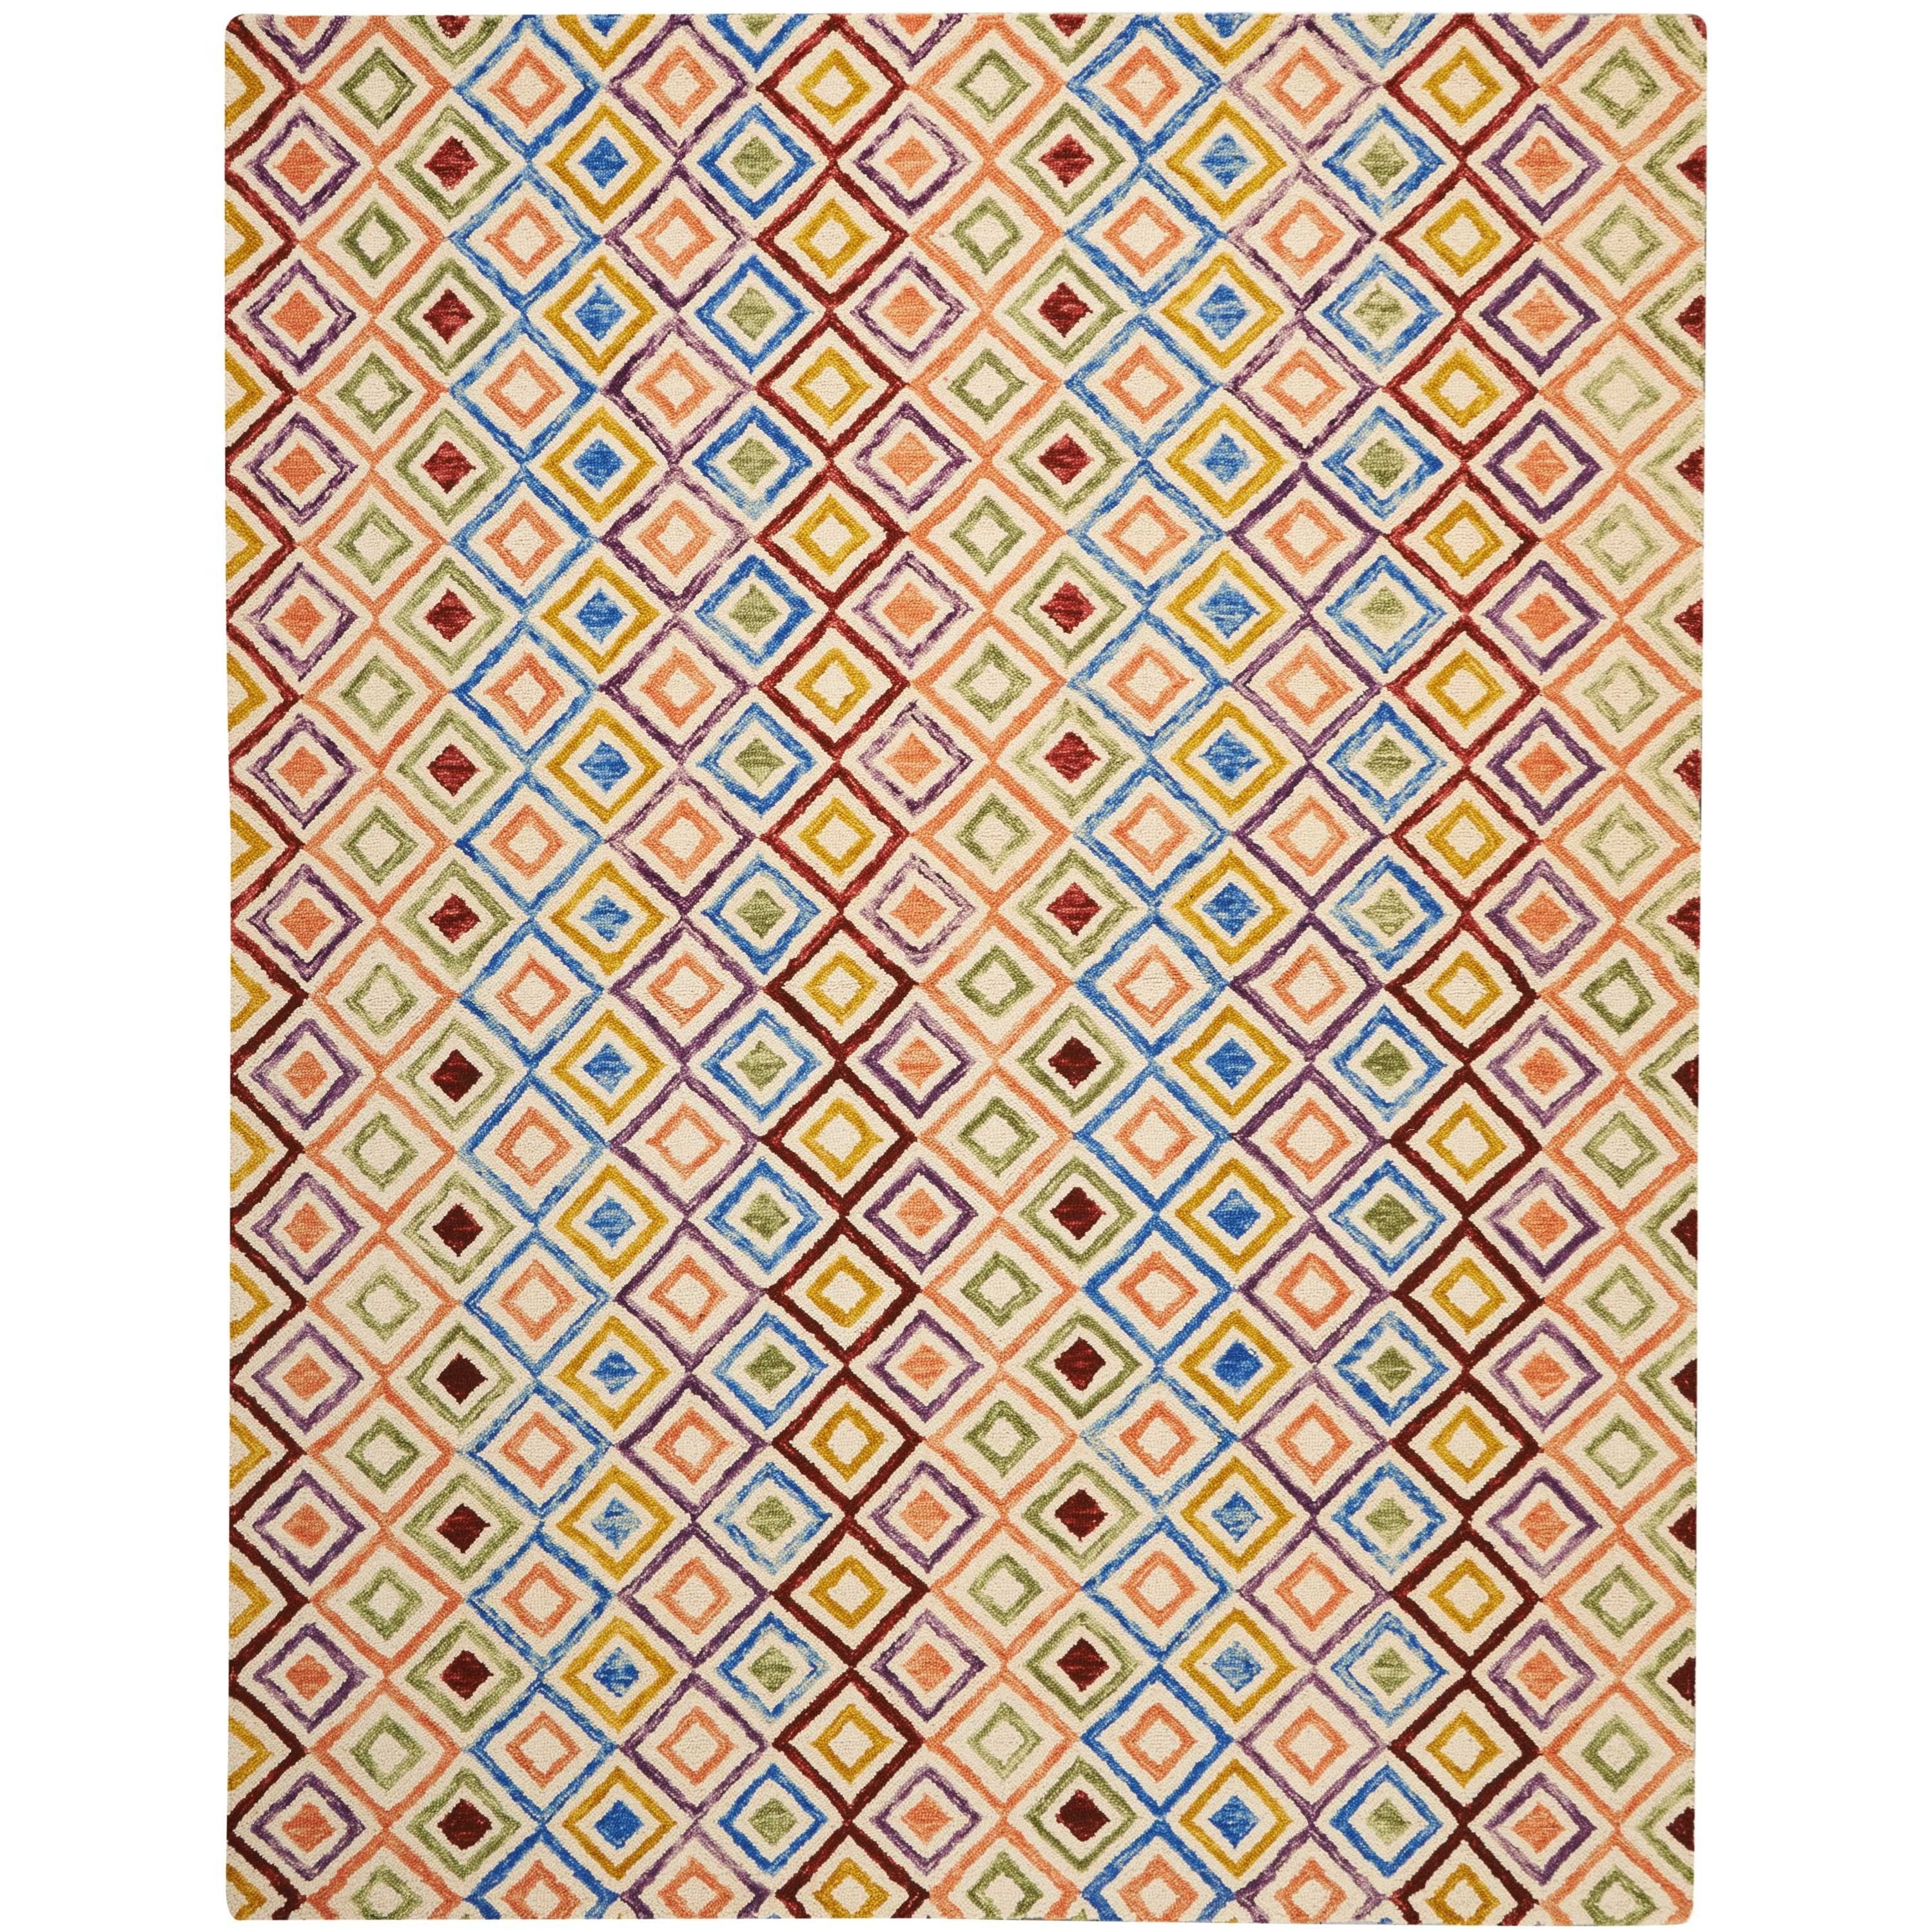 """Vibrant 8'X10'6""""  Rug by Nourison at Home Collections Furniture"""